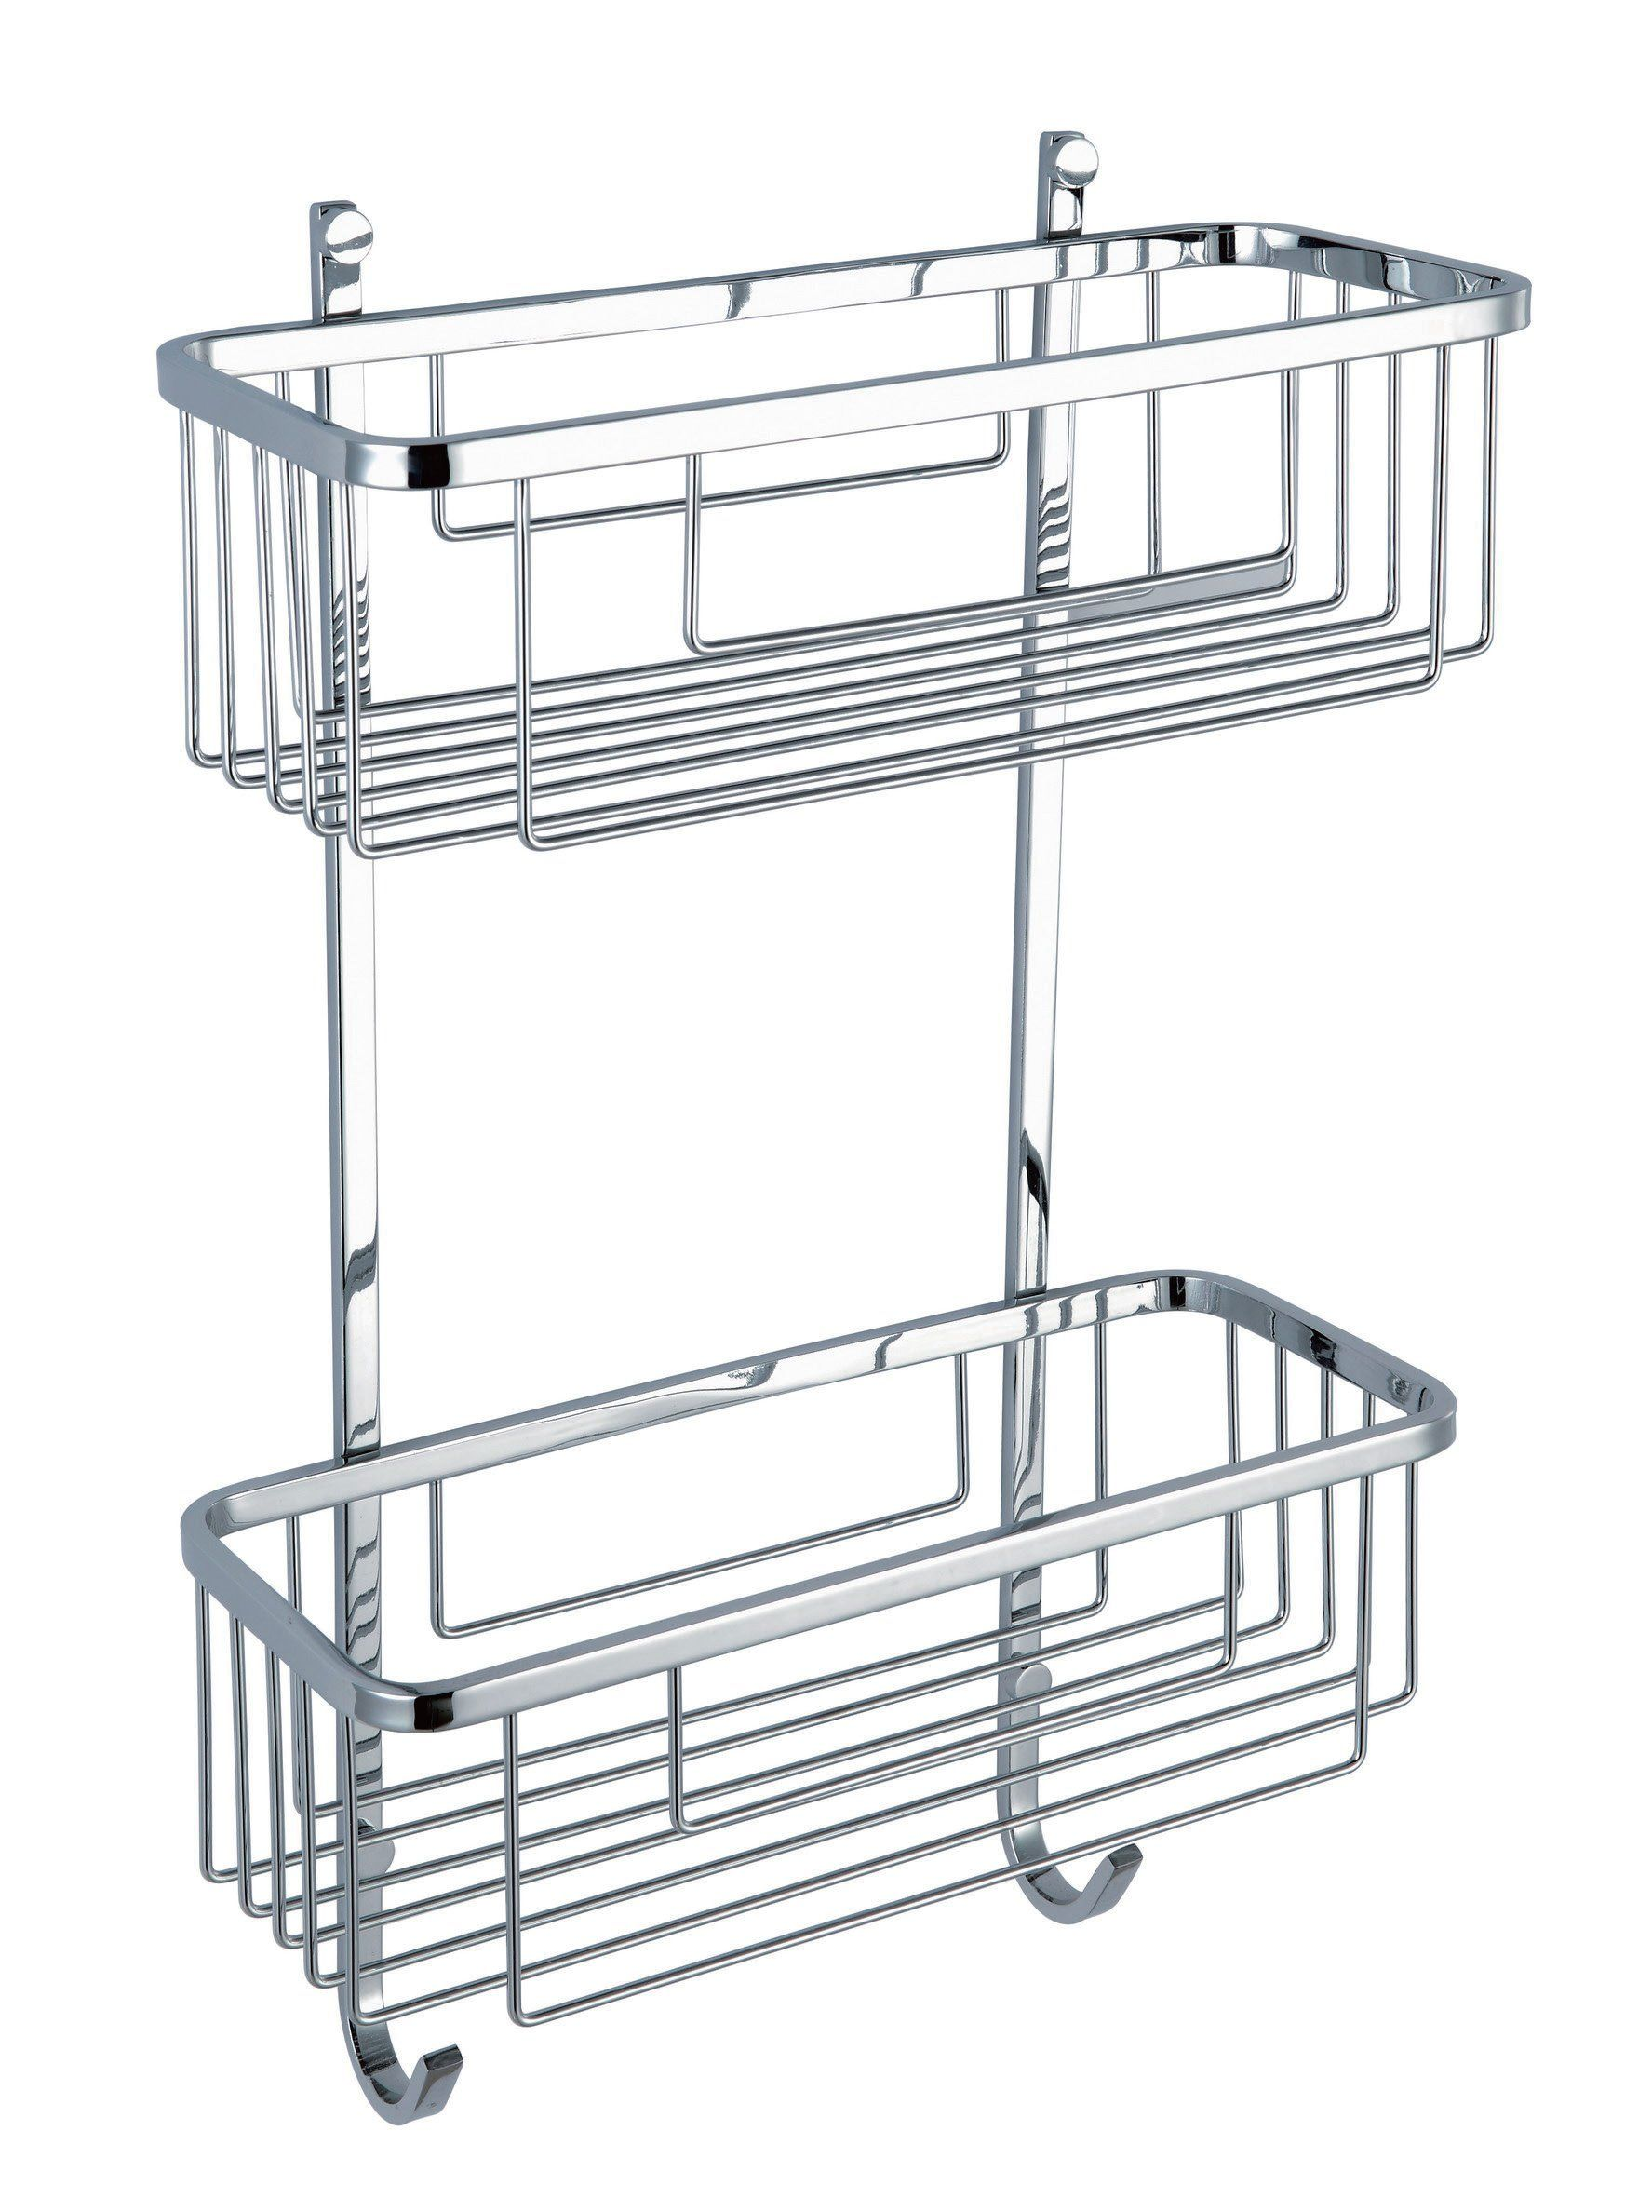 Hane 2 Tiers Stainless Steel Bathroom Shower Caddy Shelf Basket 09 121 Polished Chrome Stainless Steel Bathroom Bathroom Shelves Diy Shelves Bathroom